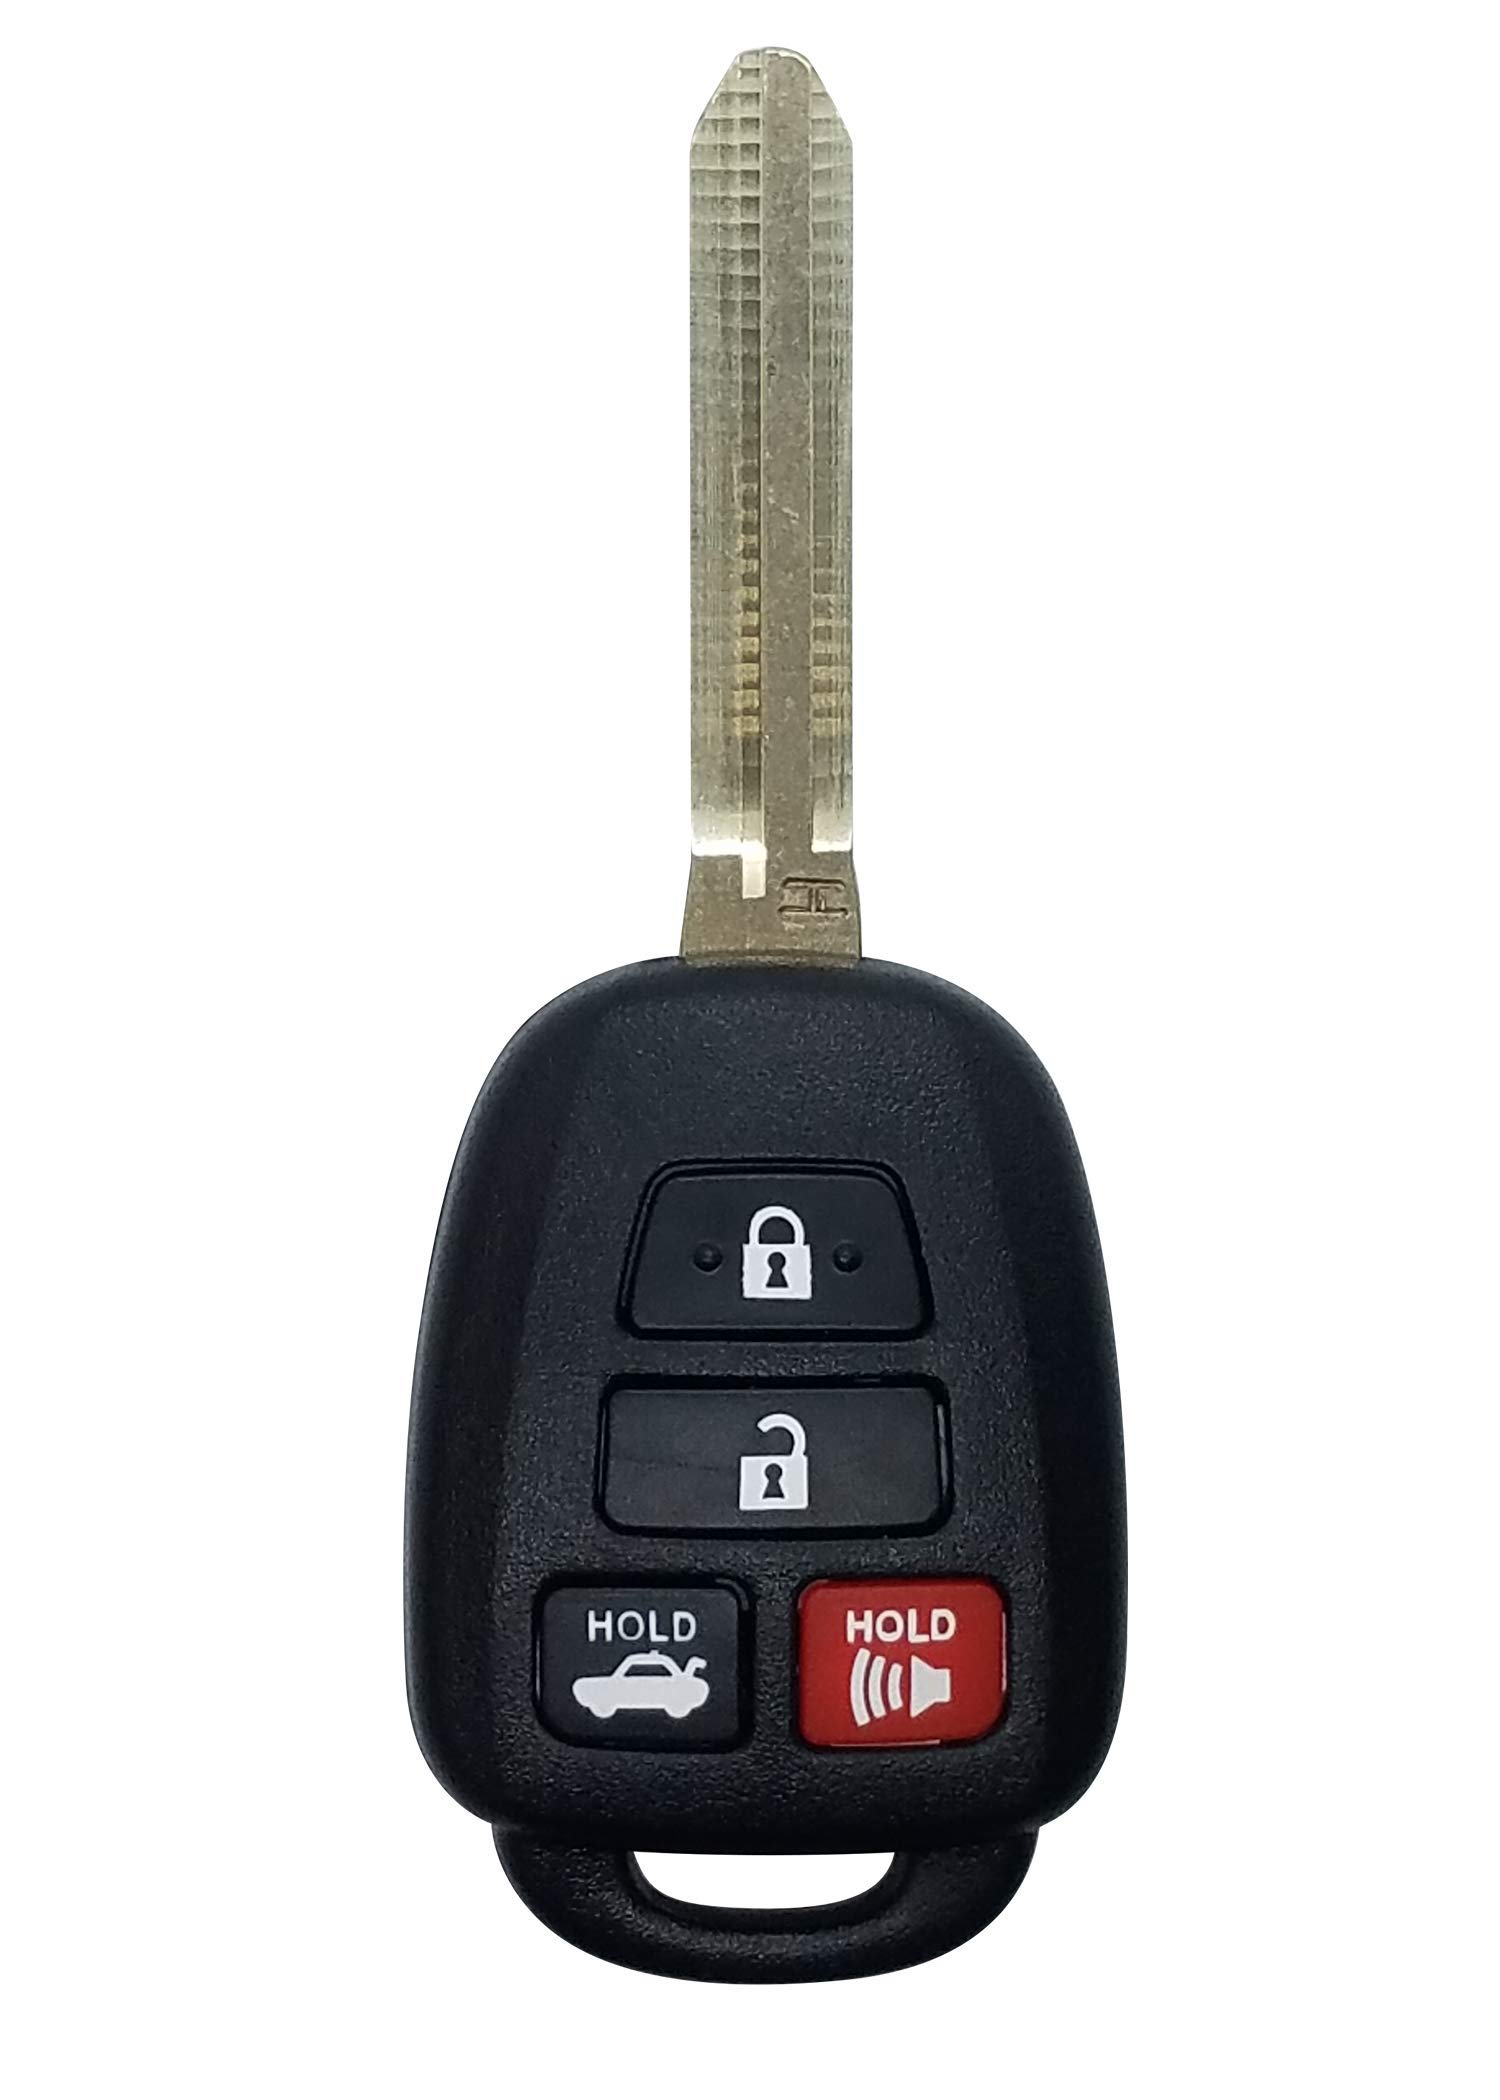 KeylessOption Keyless Entry Remote Car Fob Ignition Key for Toyota Camry with G Chip HYQ12BDM Pack of 2